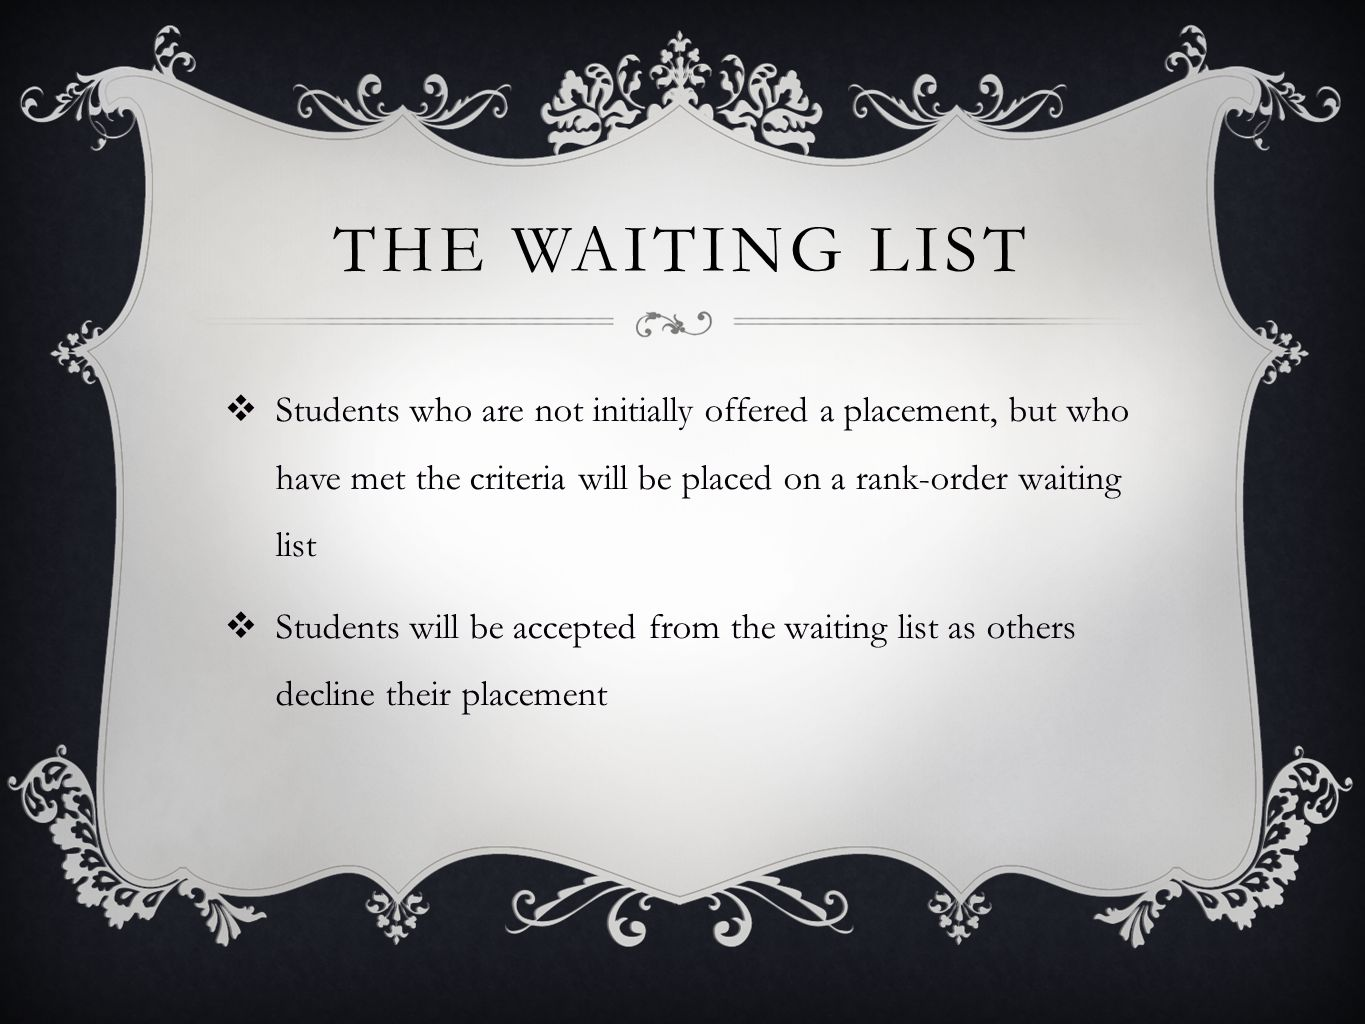 The waiting list Students who are not initially offered a placement, but who have met the criteria will be placed on a rank-order waiting list.